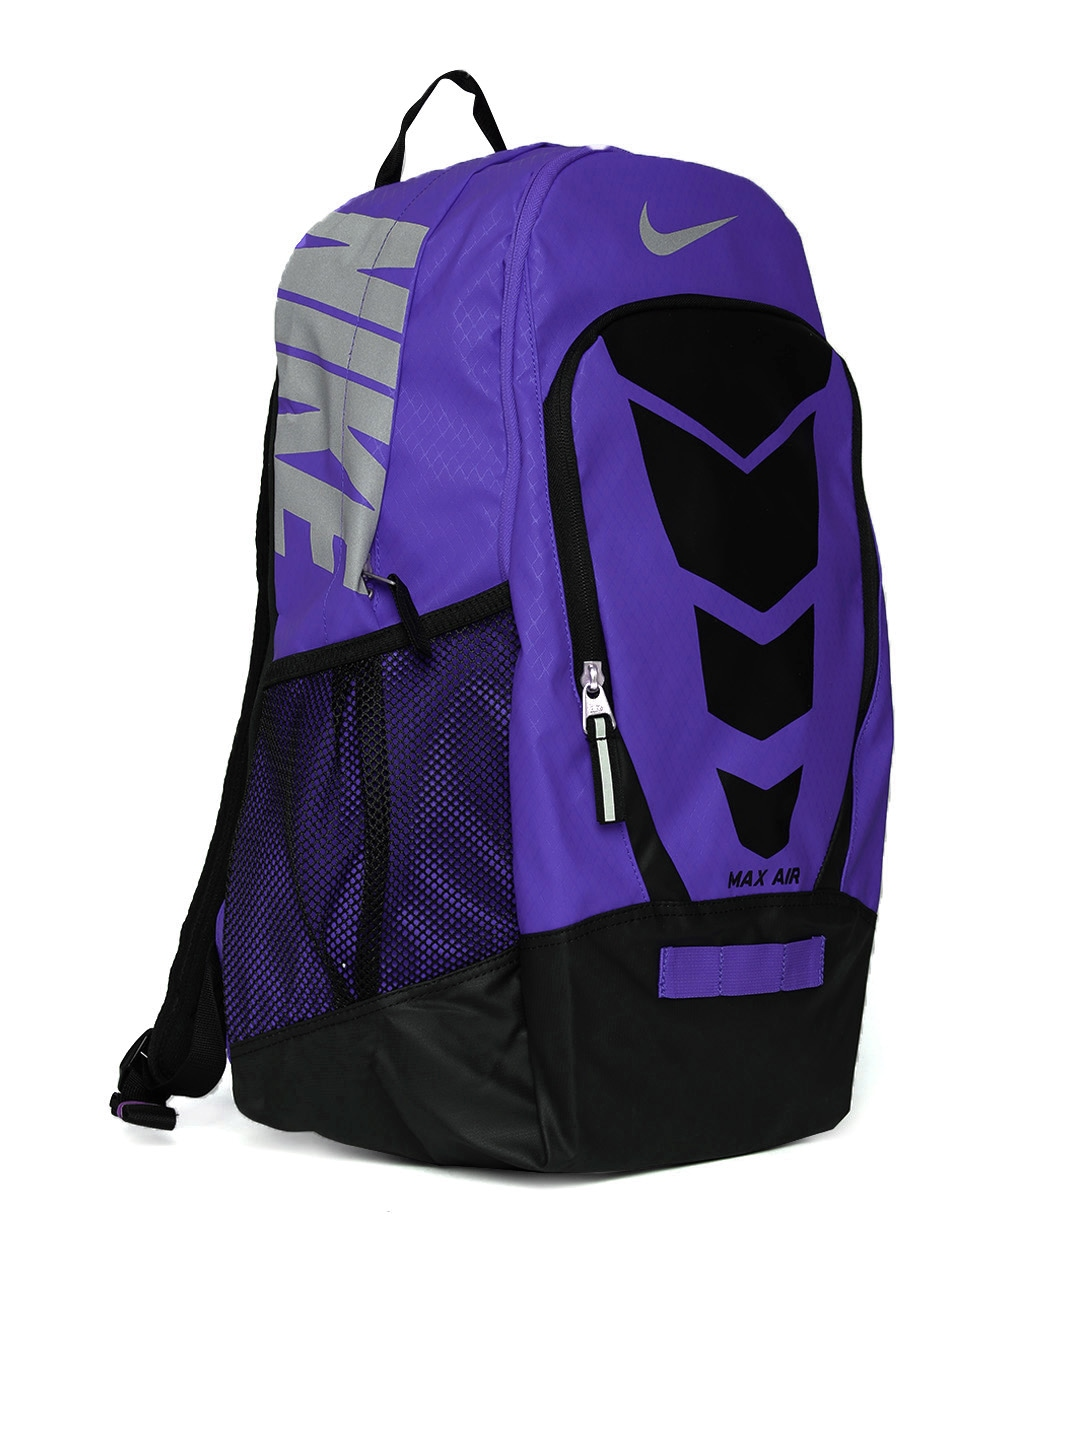 6c9ed0c329b nike air vapor backpack pink Sale,up to 44% Discounts